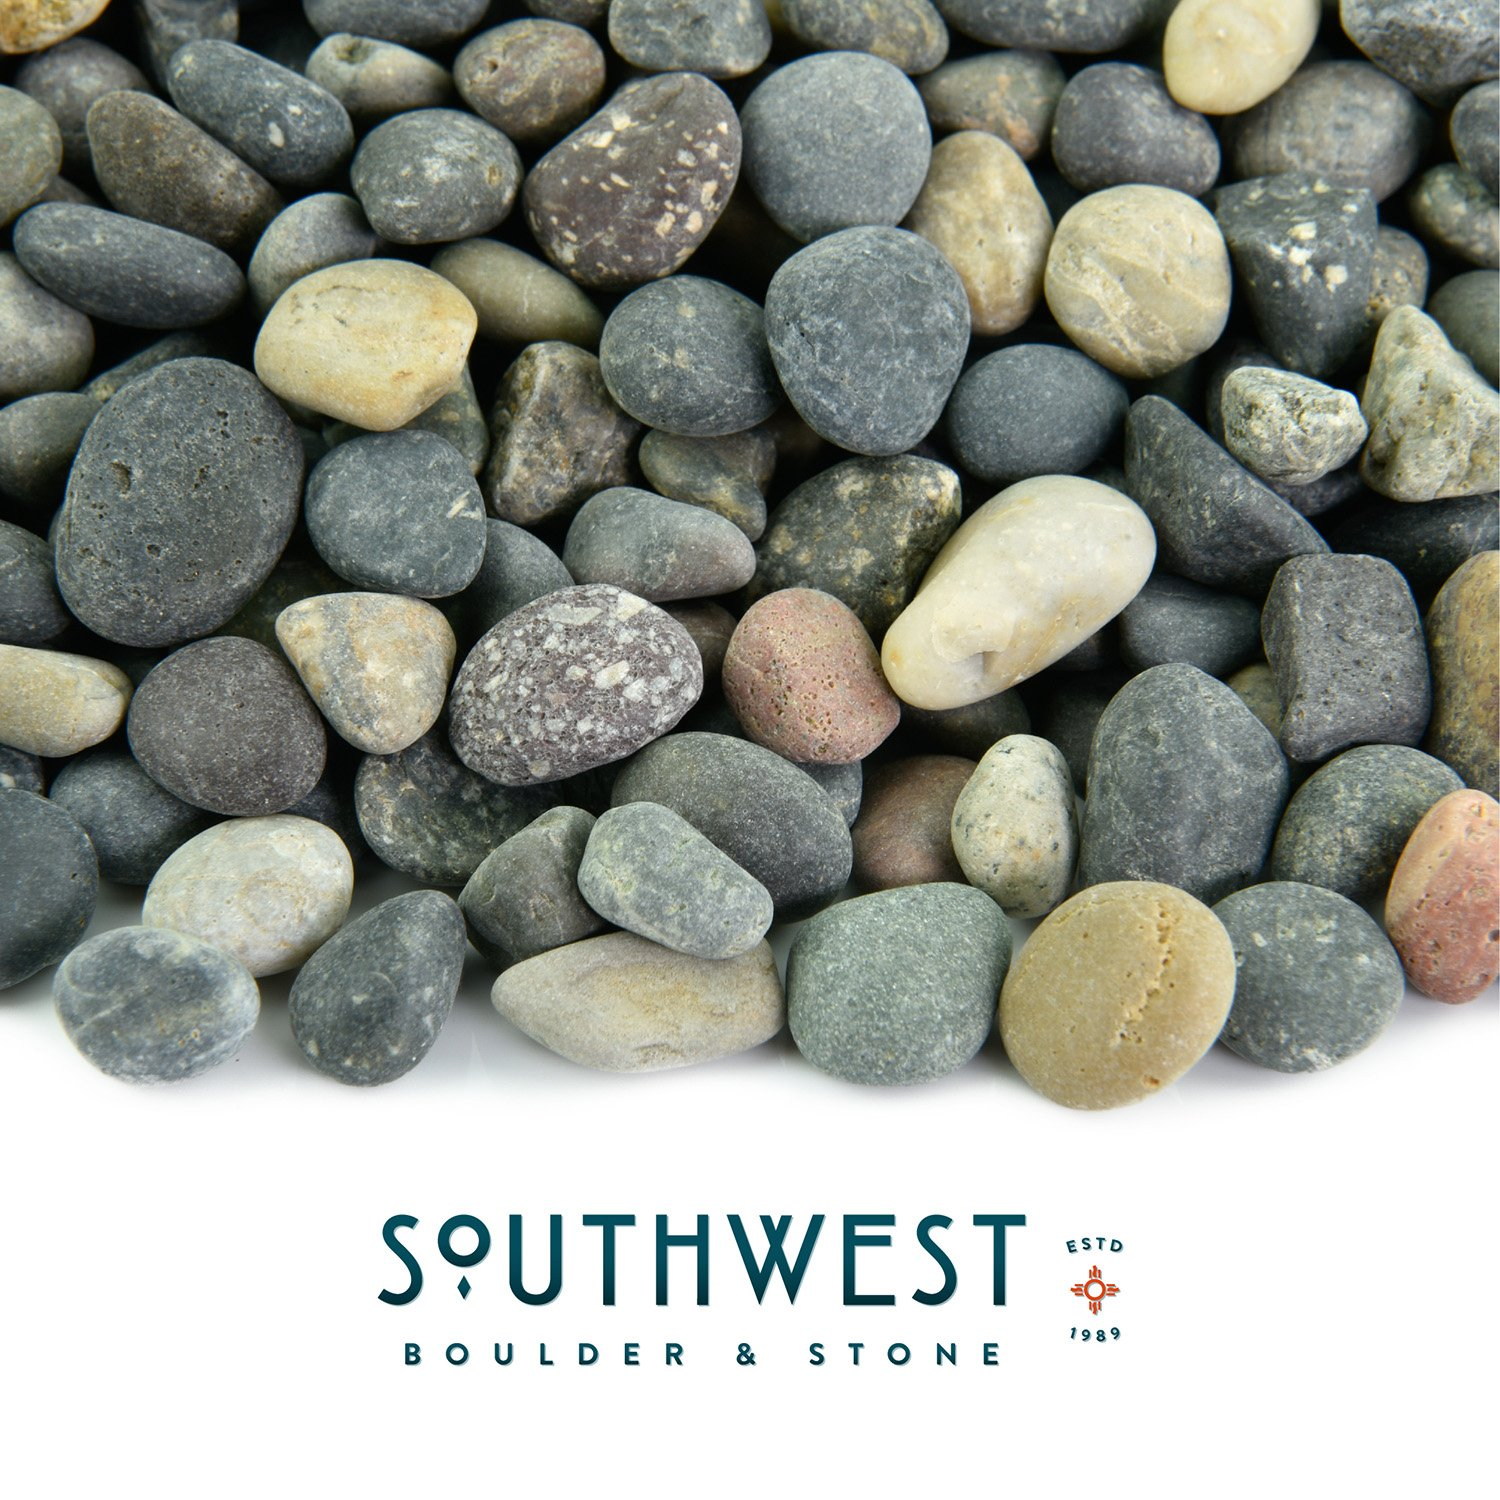 Fire Pit Essentials Mexican Beach Pebbles | 20 Pounds of Smooth Unpolished Stones | Hand-Picked, Premium Pebbles for Garden and Landscape Design | Mixed, 3/8 Inch